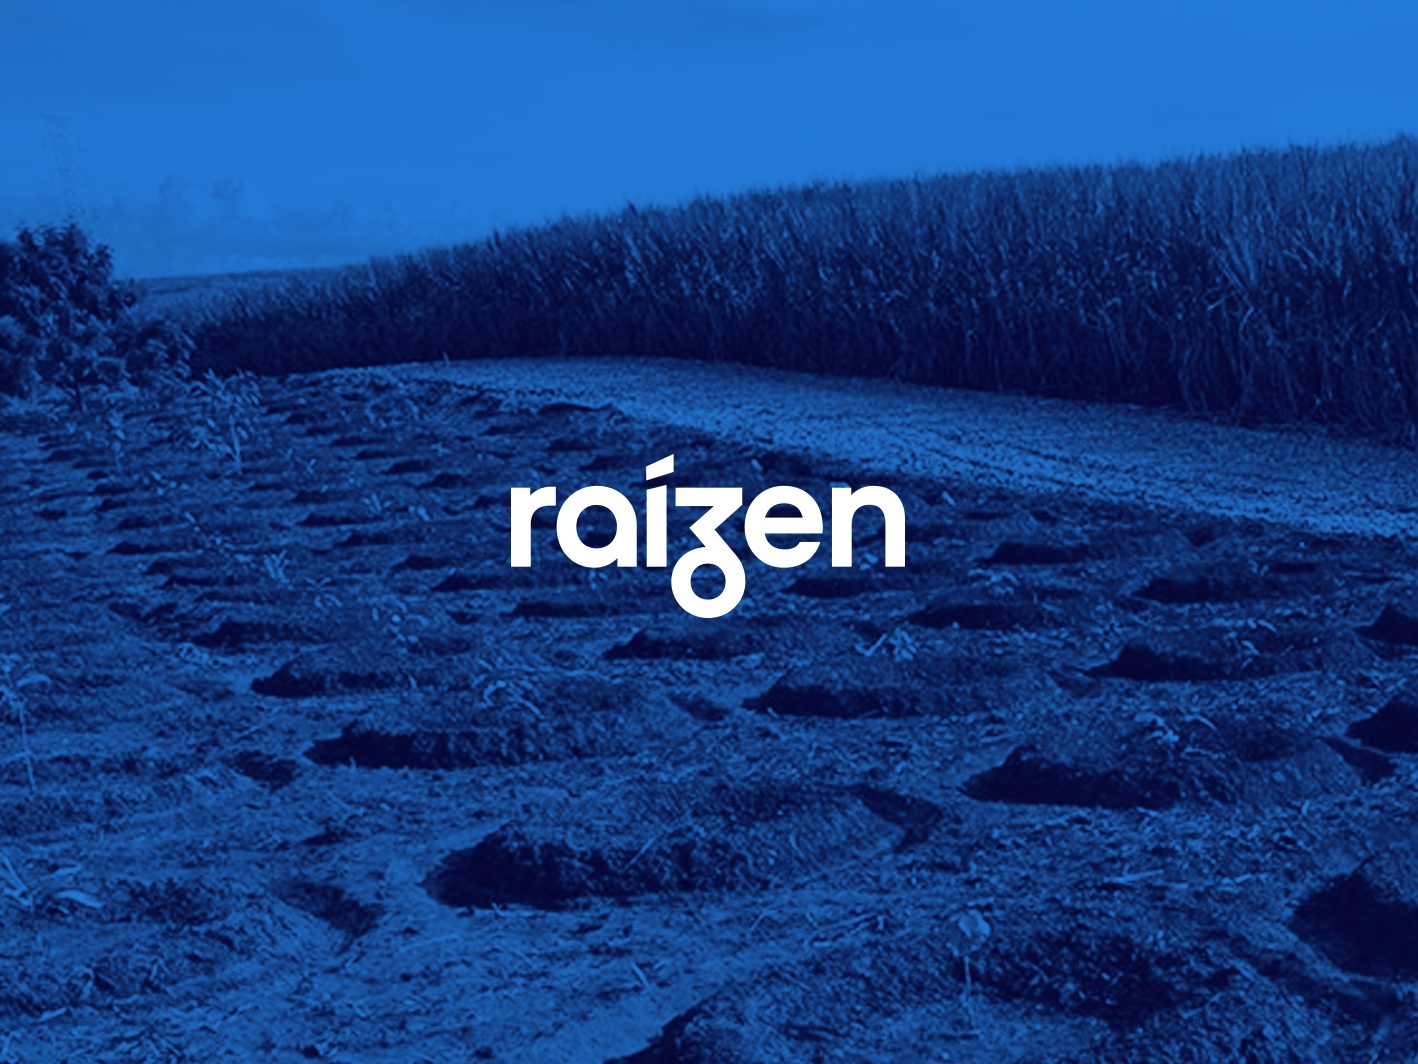 AGTECH INNOVATION - Over the last four years our partnership with Raízen Energia has been focused on developing and operating industrial scale machine learning and computer vision platforms for operational planning, optimization and risk management of 800.000 hectares of sugarcane.